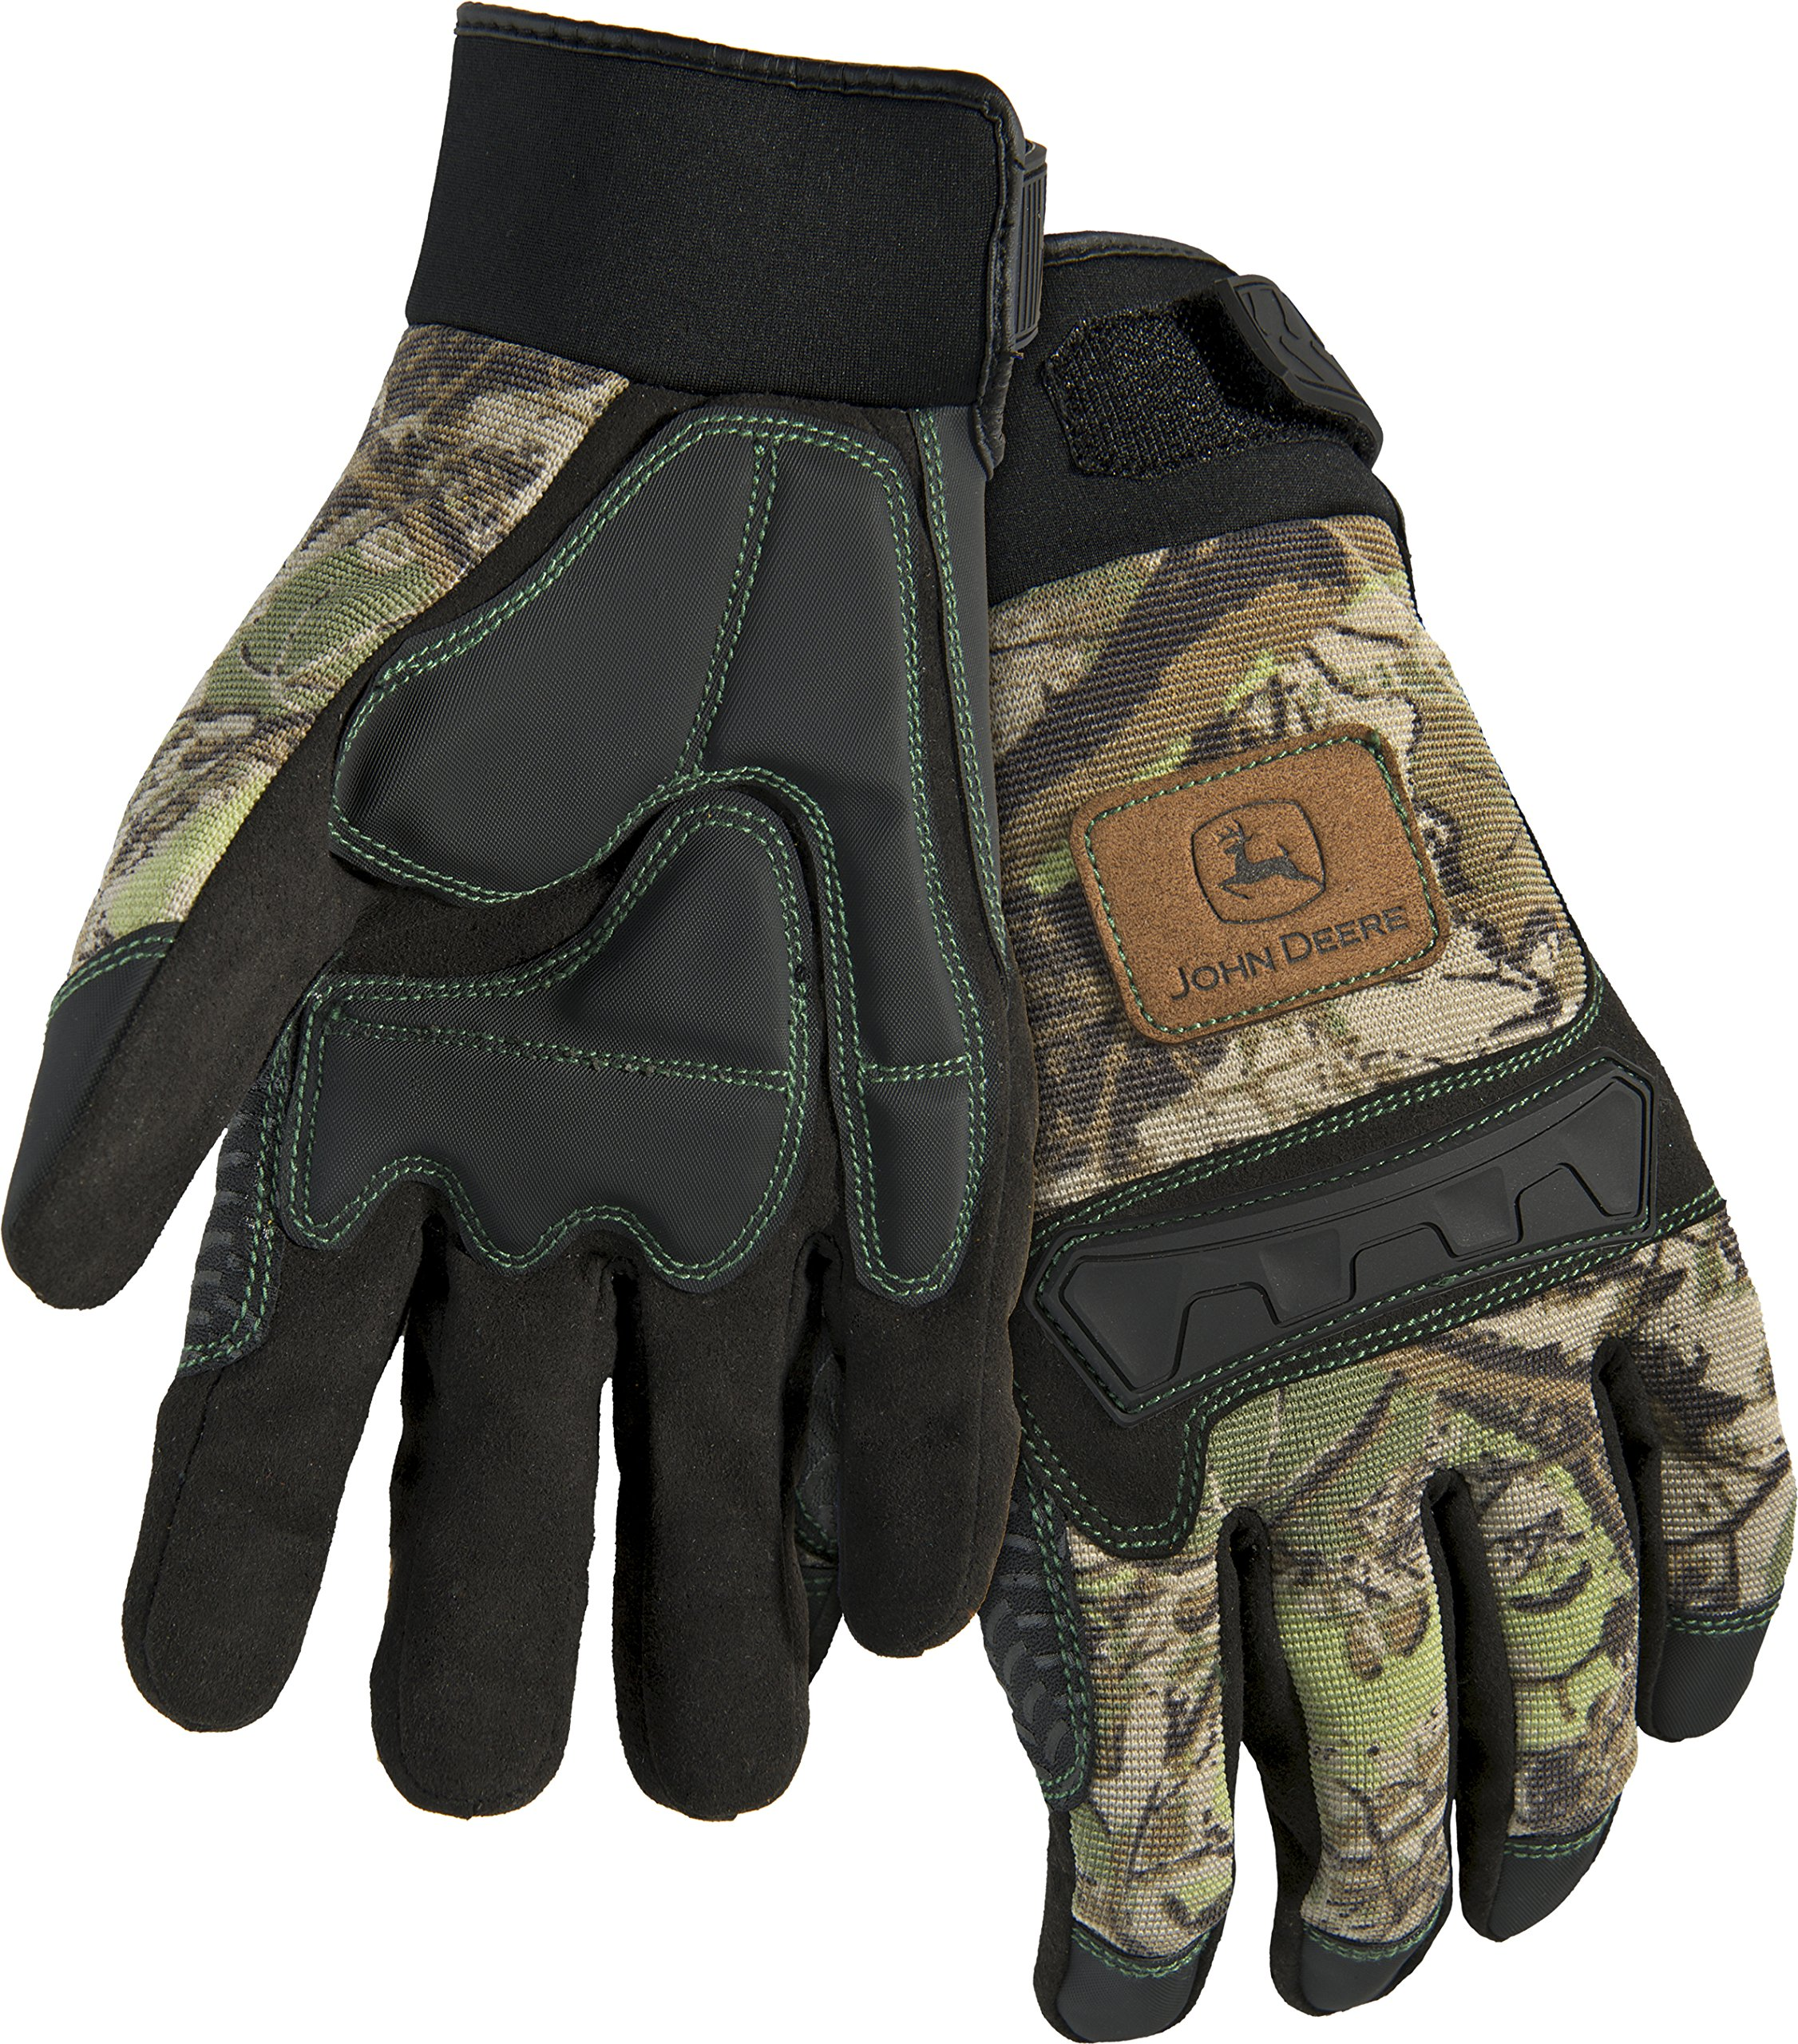 West Chester John Deere JD00011 Anti-Vibration High Dexterity Synthetic Leather Palm Knuckle Work Gloves: Camo, X-Large, 1 Pair by West Chester (Image #1)